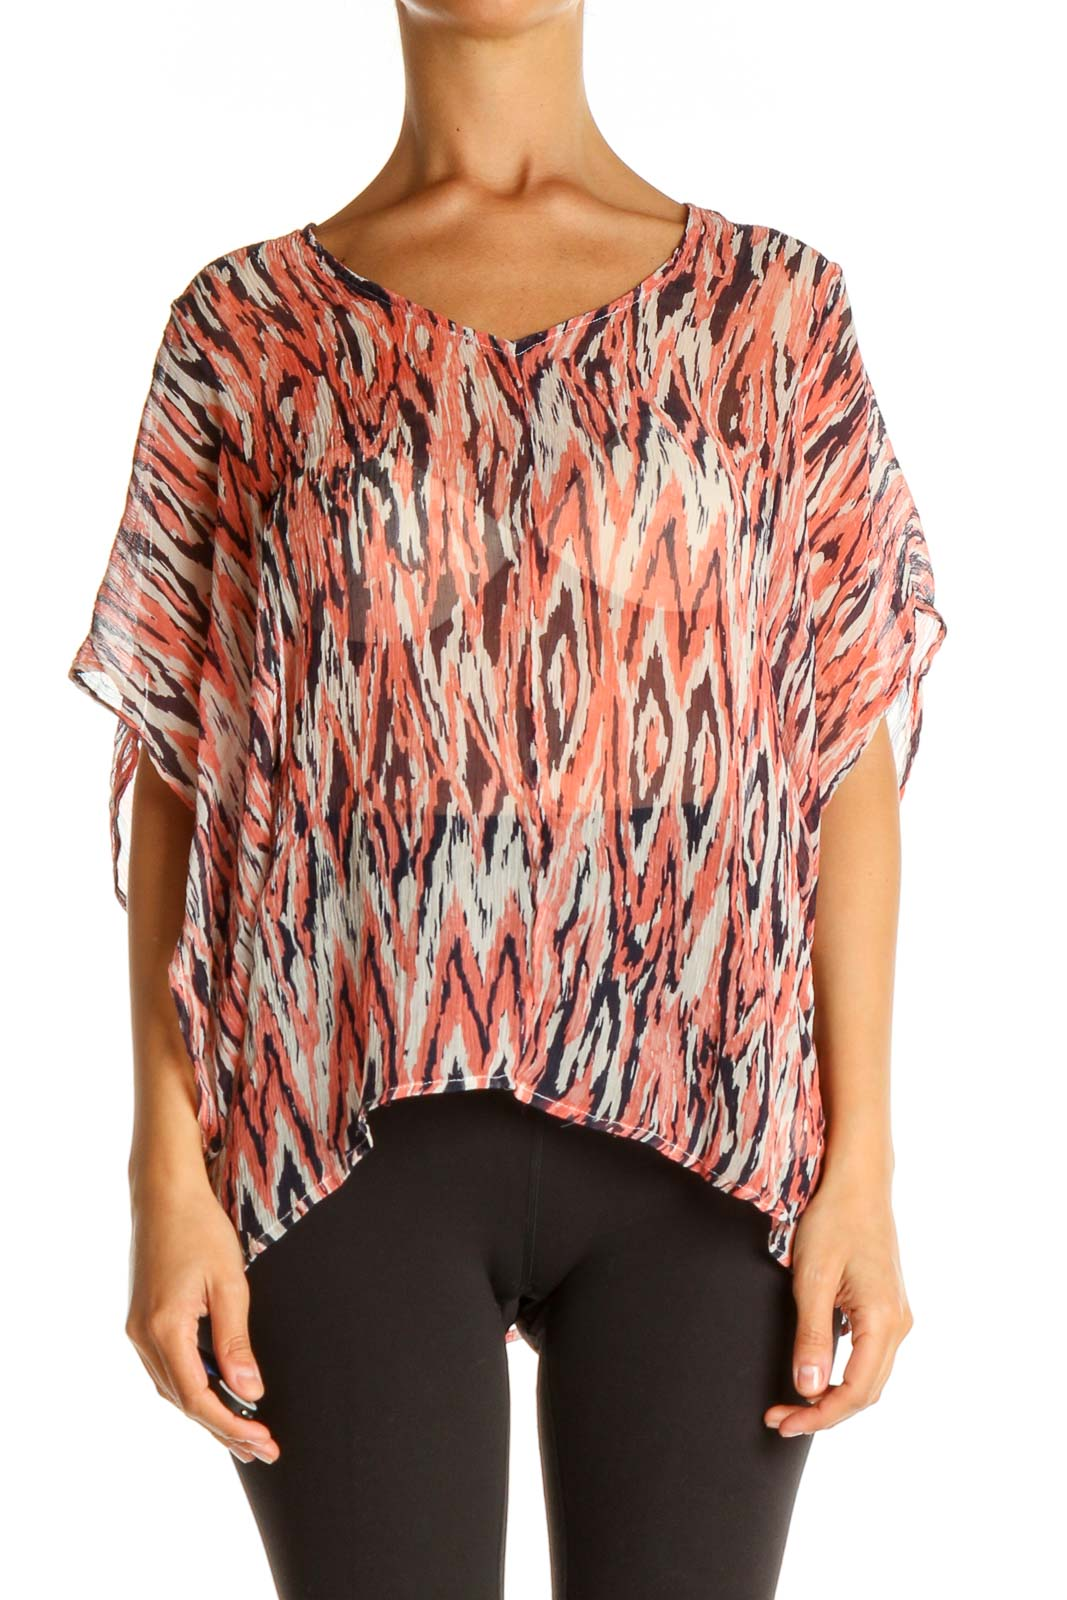 Pink Graphic Print Bohemian Blouse Front